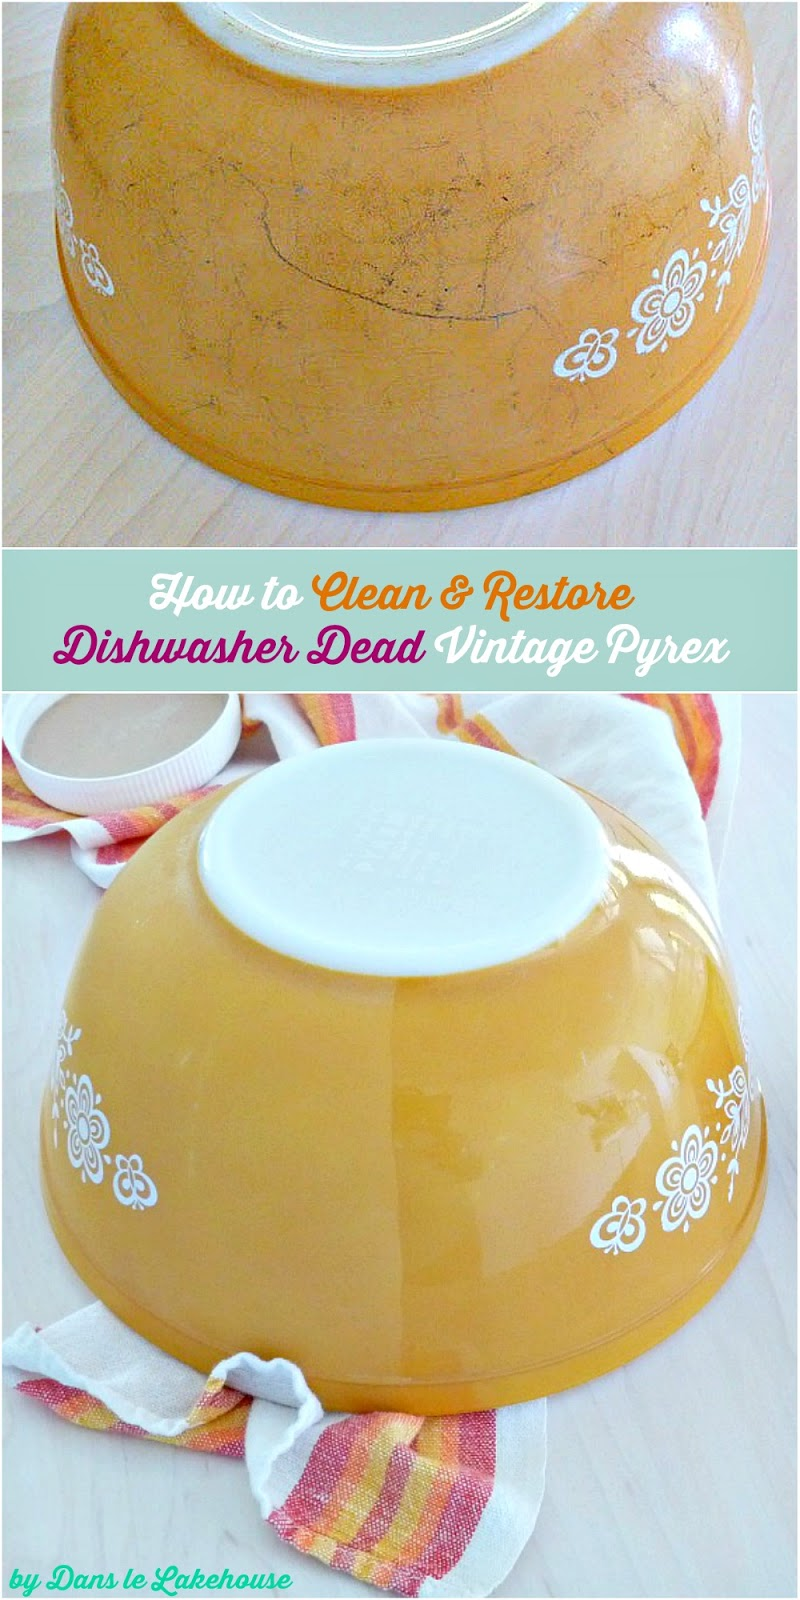 How to clean and restore dishwasher dead vintage Pyrex